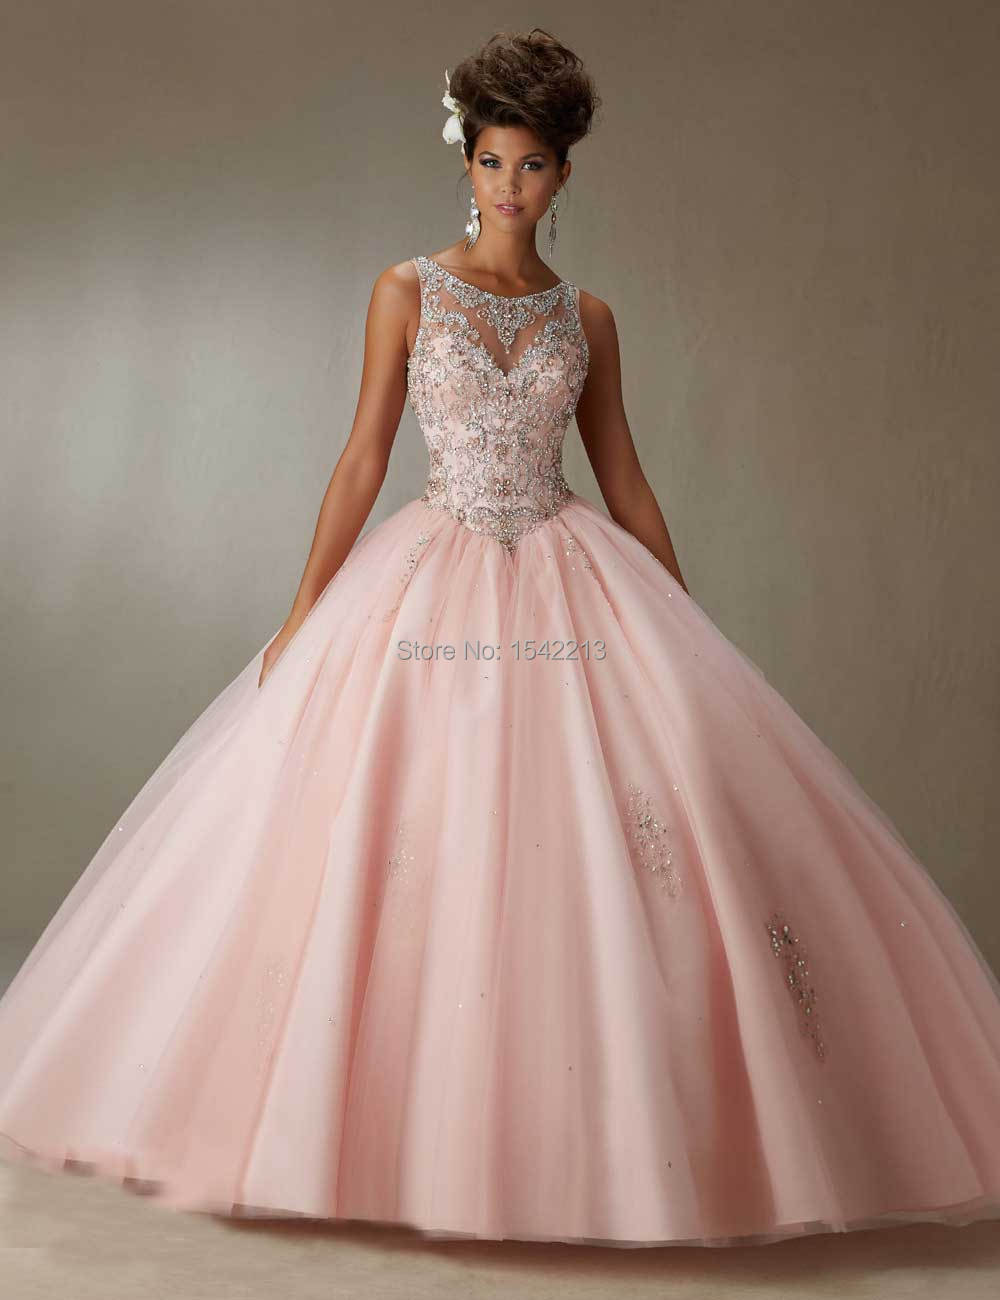 Aliexpress.com : Buy Light Sky Blue Pink Ball Gown Quinceanera ...